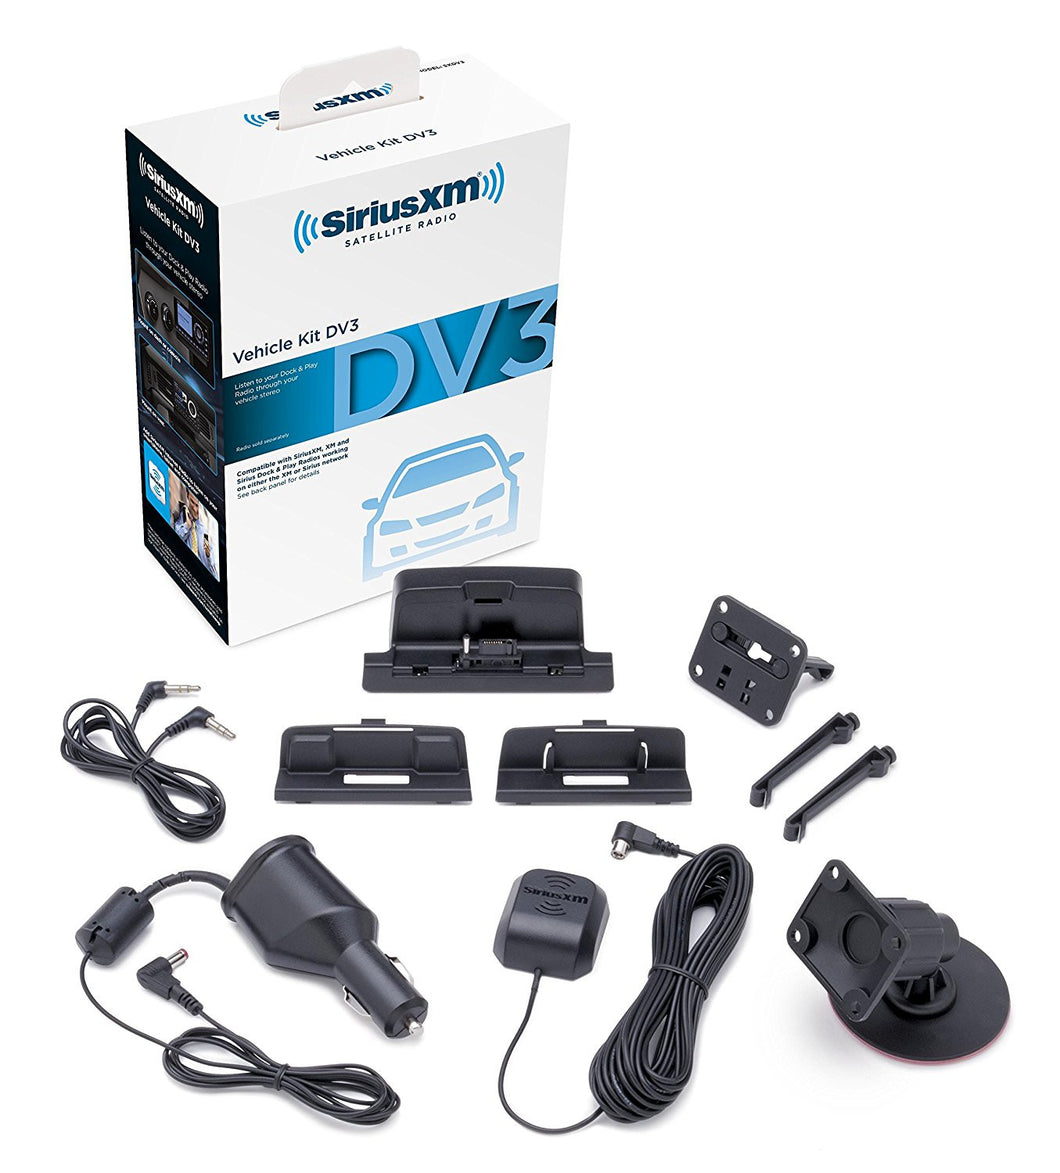 Sirius XM DV3 Car Kit